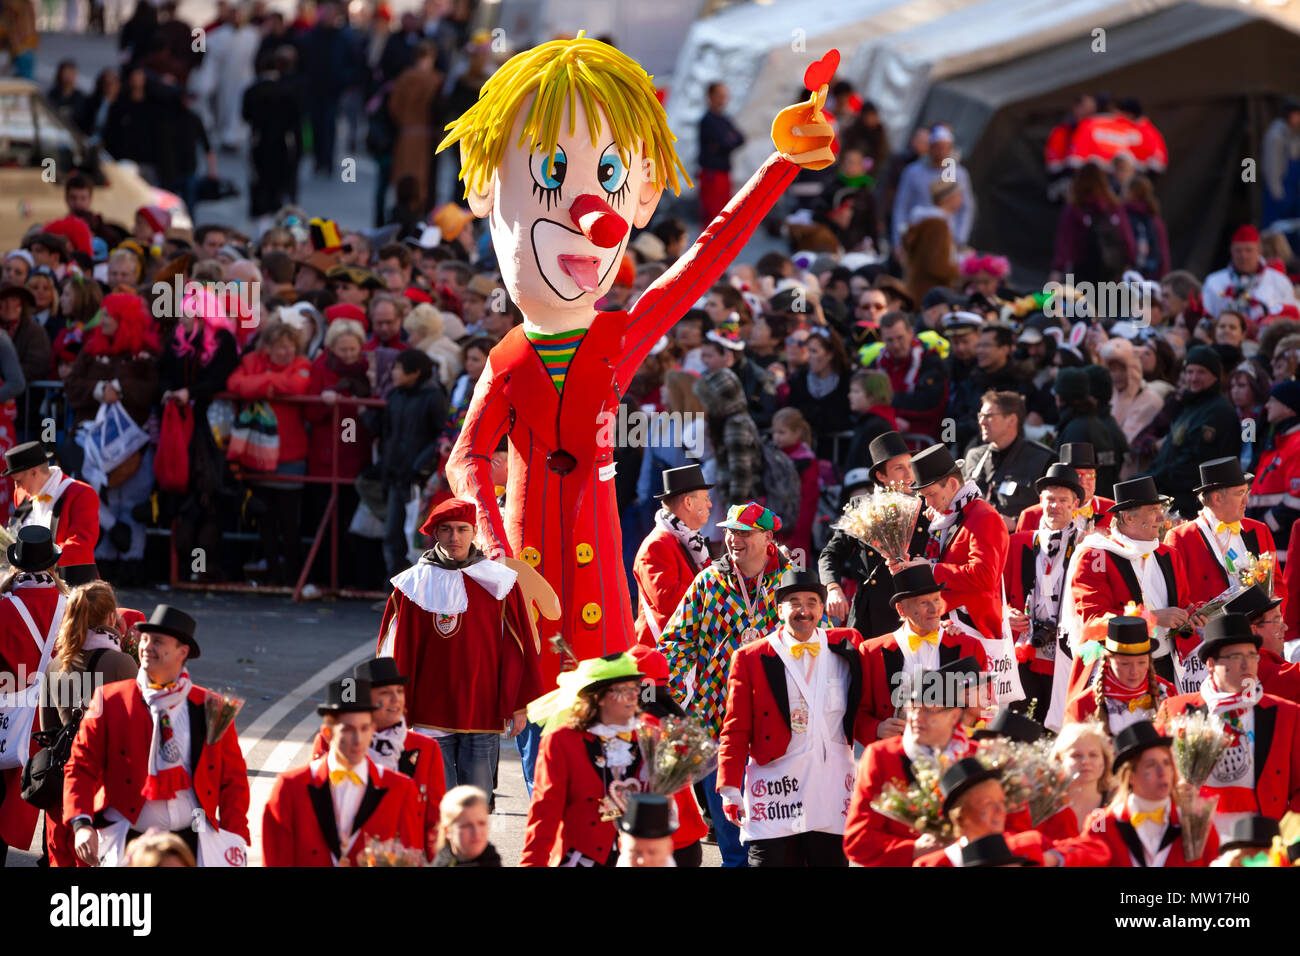 Large paper mache clown sculpture at rose monday parade 2011 in Cologne, Germany Stock Photo